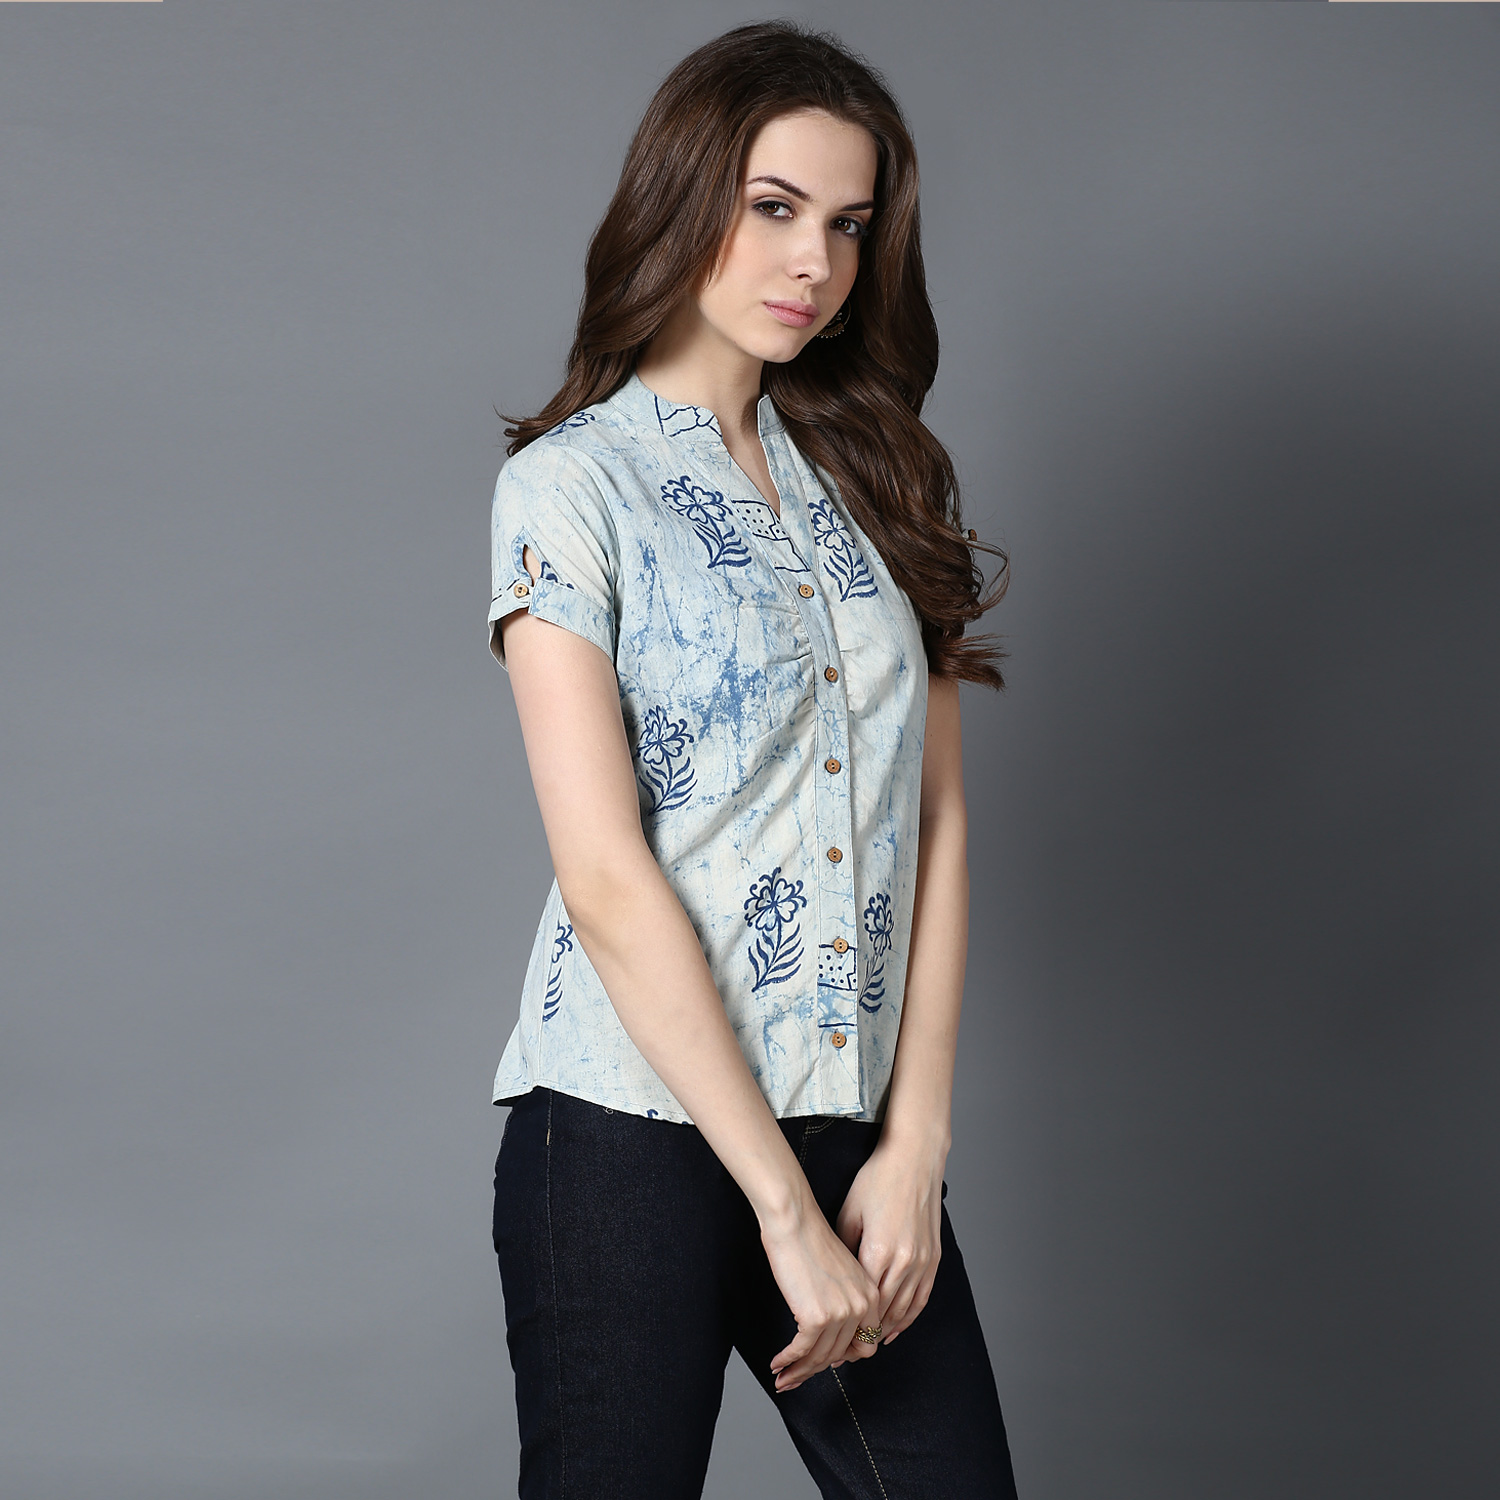 Blue Dabu block-printed top (INDI-402)